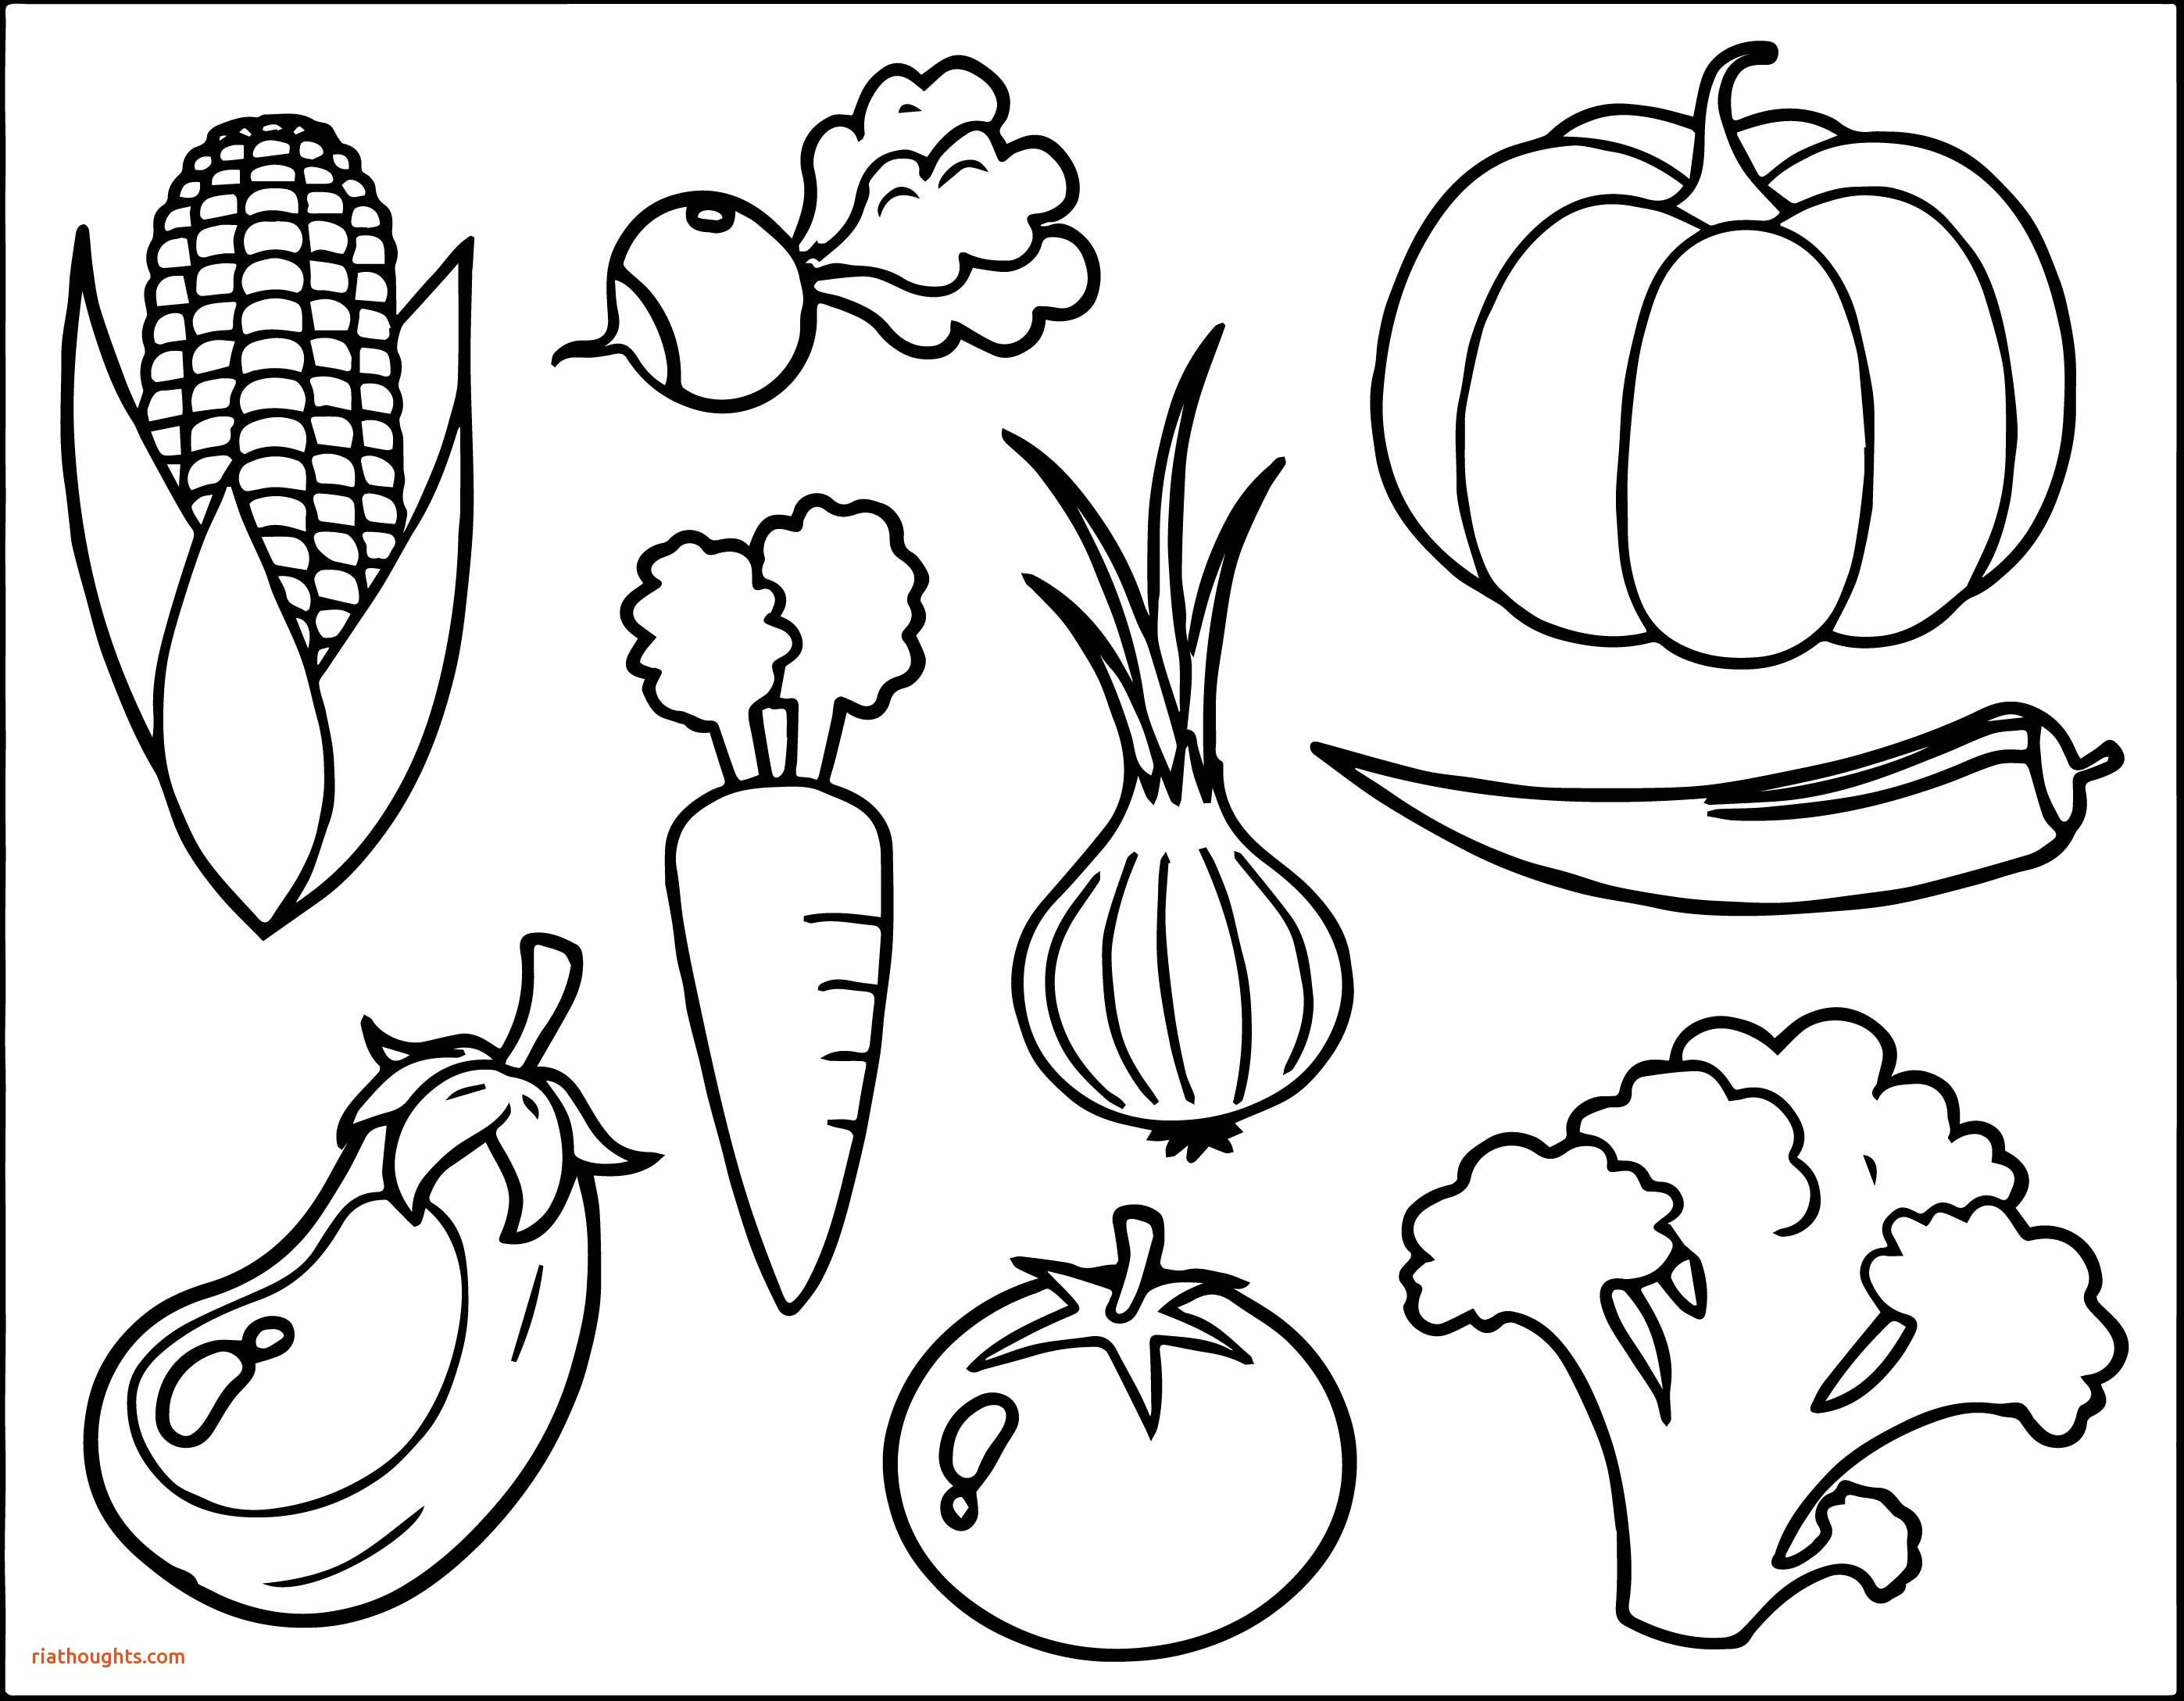 Greatest Coloring Pictures Of Fruits Valuable